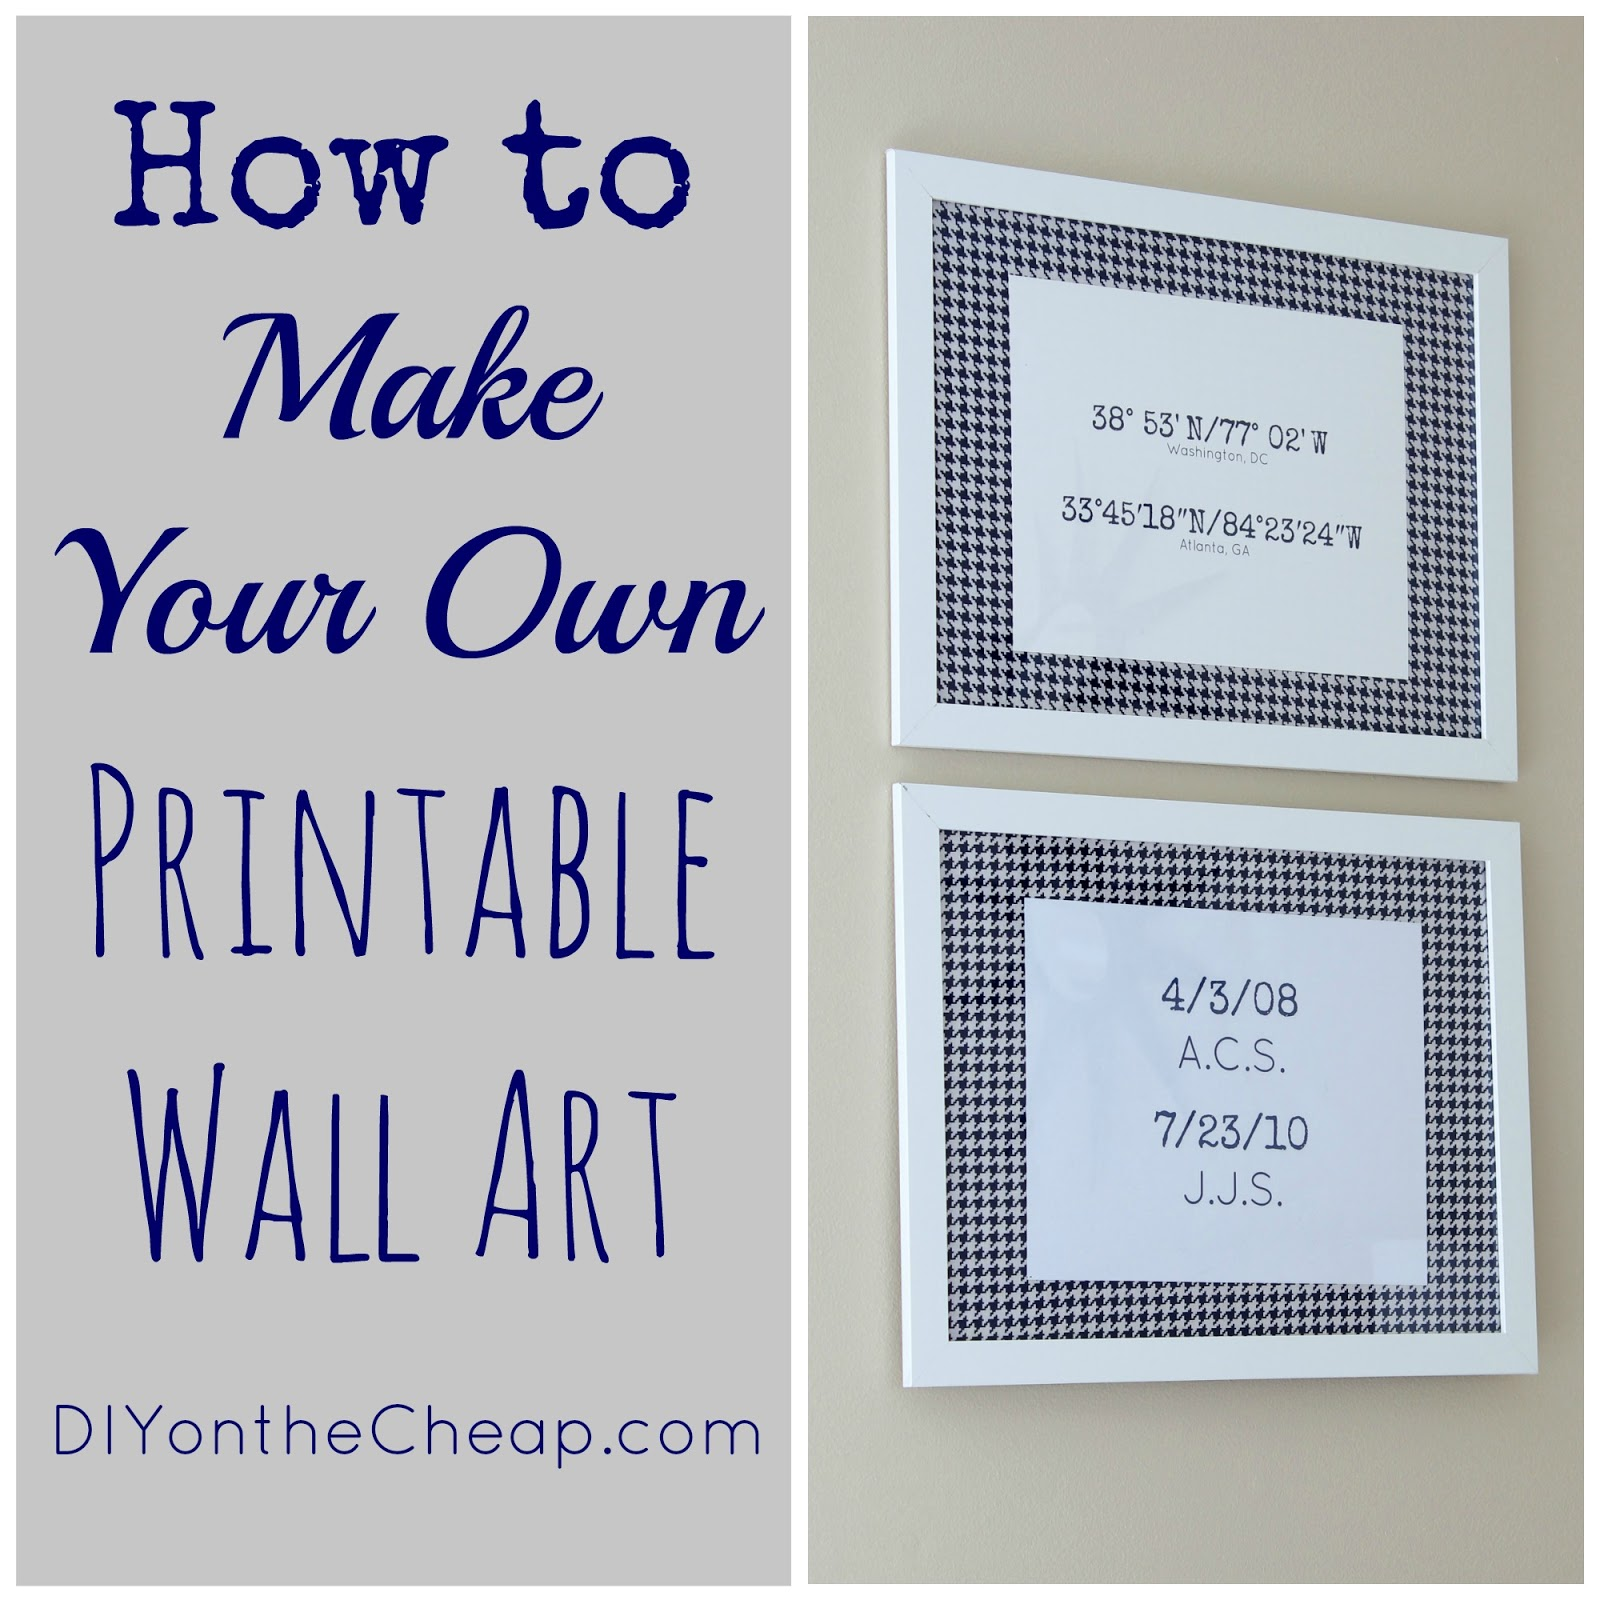 How To Make Your Own Printable Wall Art Tutorial Via DIYontheCheap